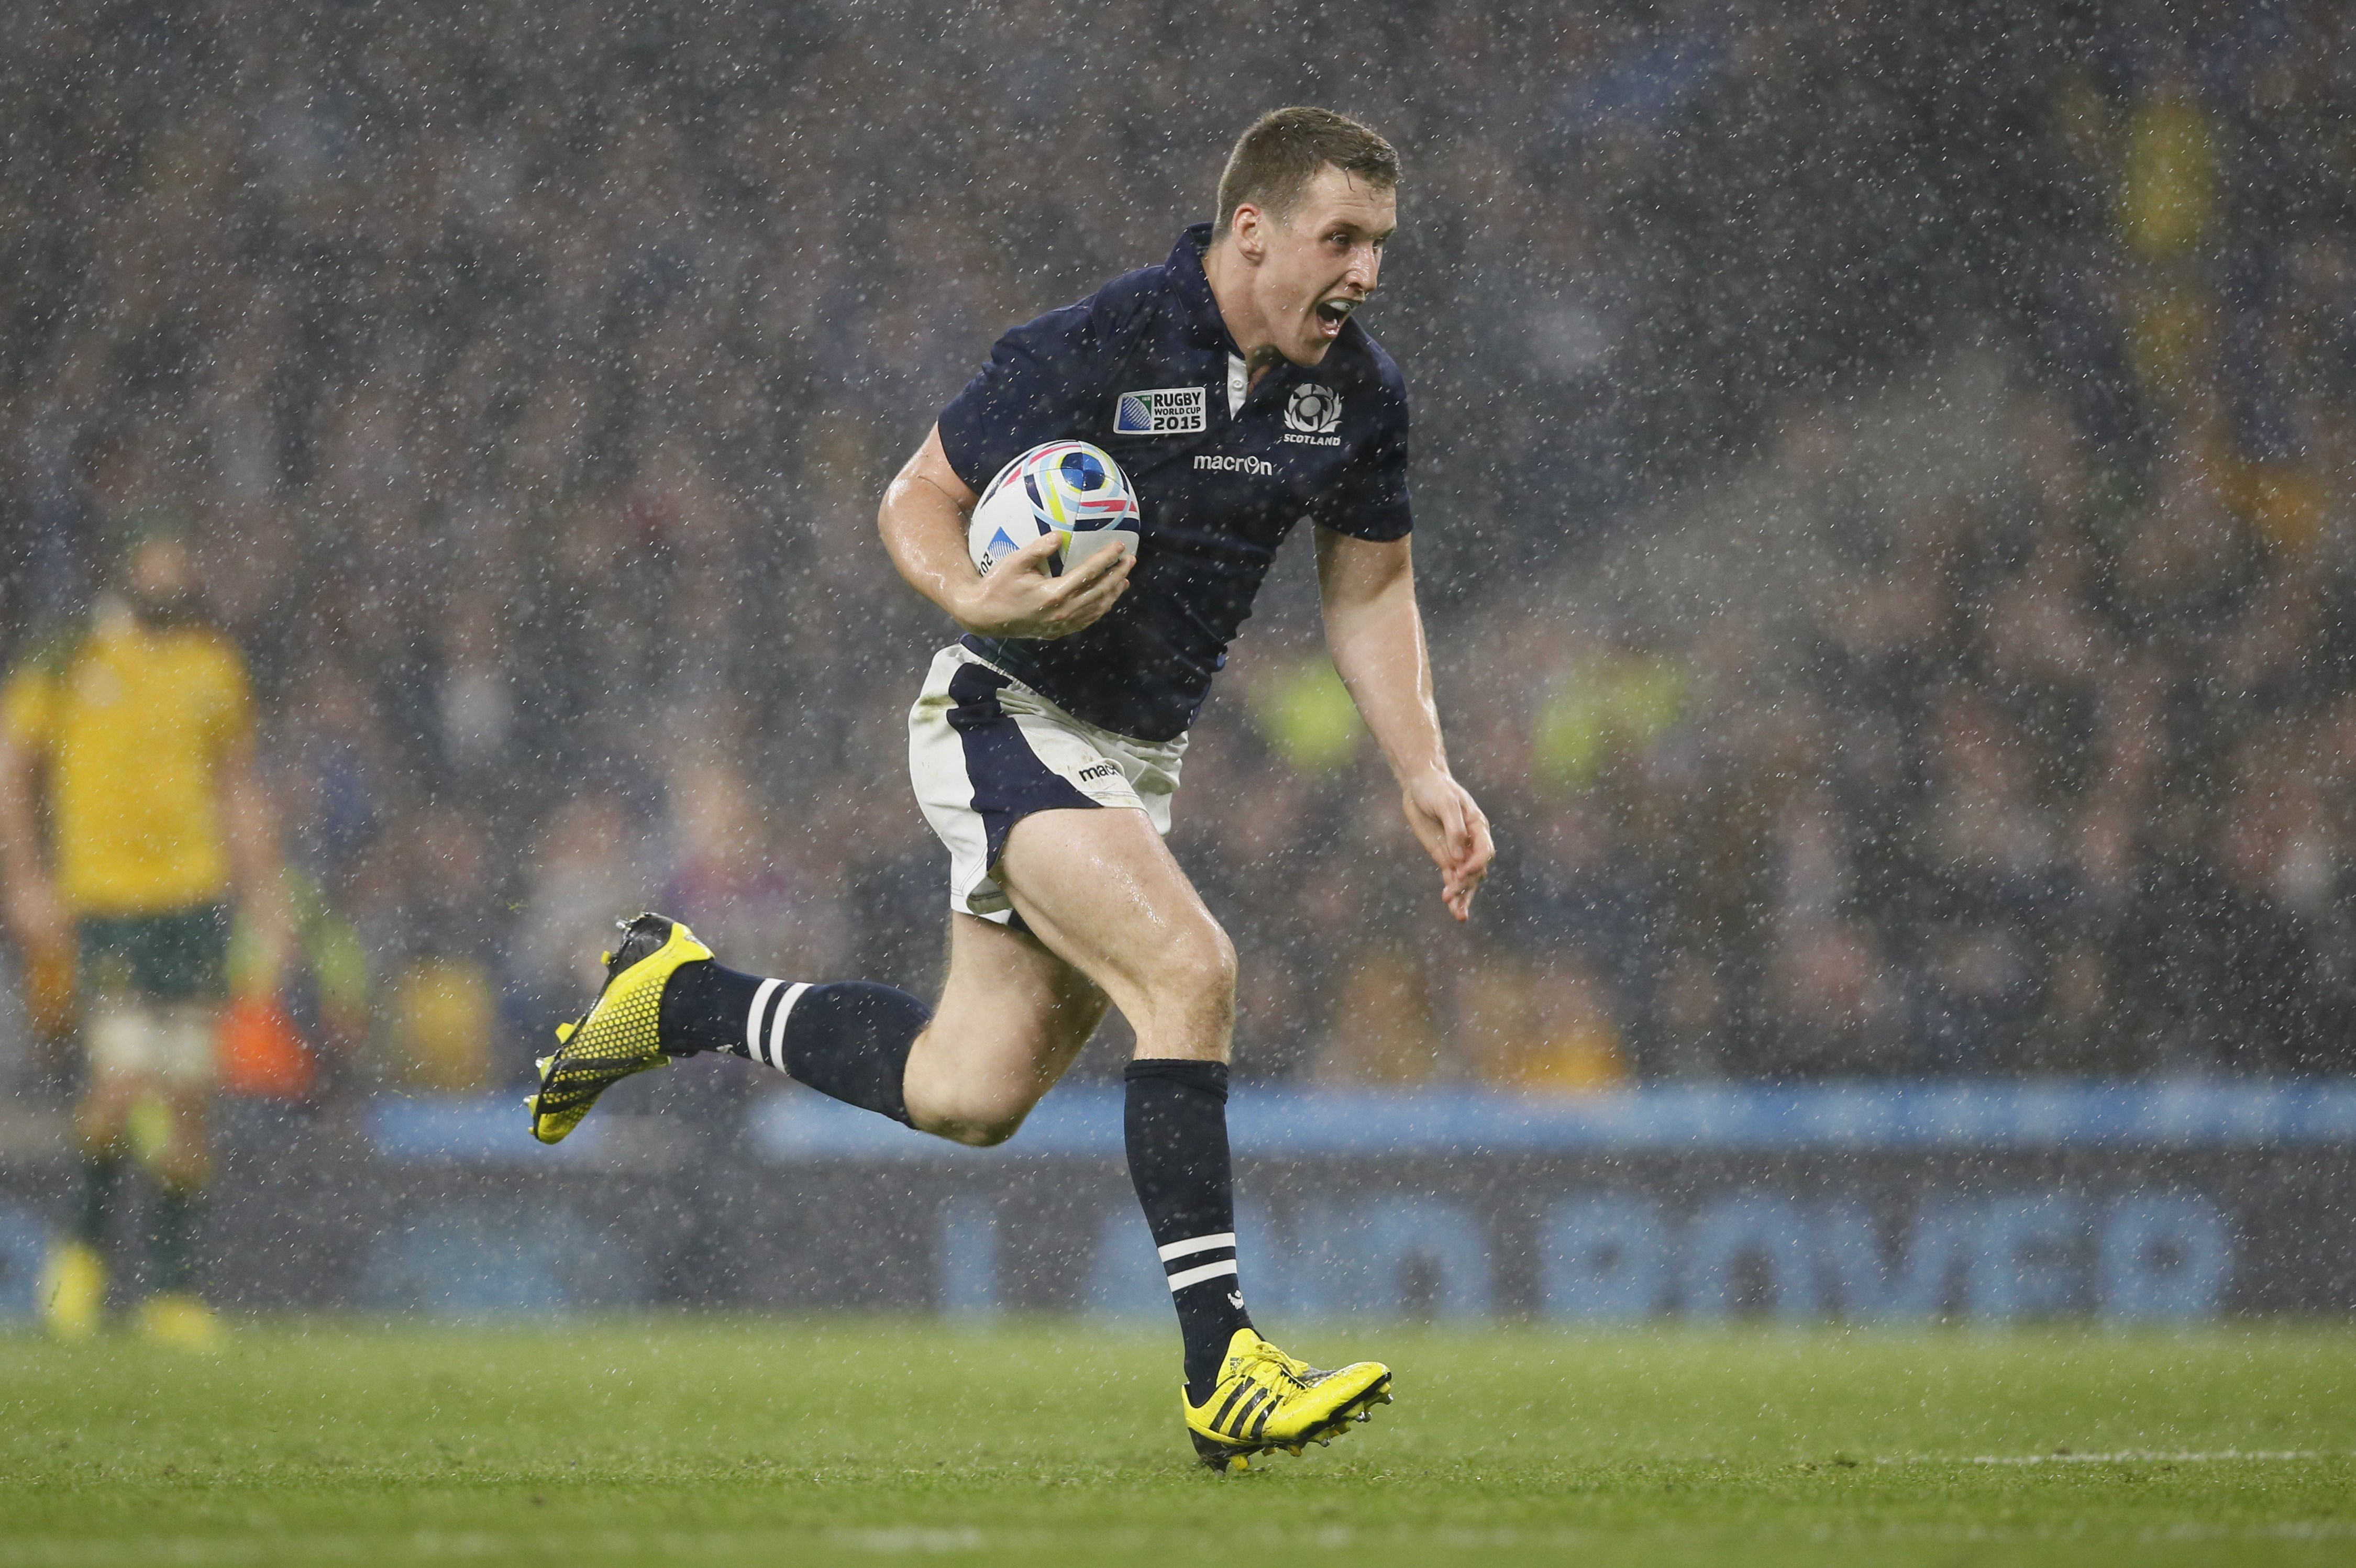 Scotland's Mark Bennett runs in to score a try during the Rugby World Cup quarterfinal match between Australia and Scotland at Twickenham Stadium, London, Sunday, Oct. 18, 2015. (AP Photo/Kirsty Wigglesworth)